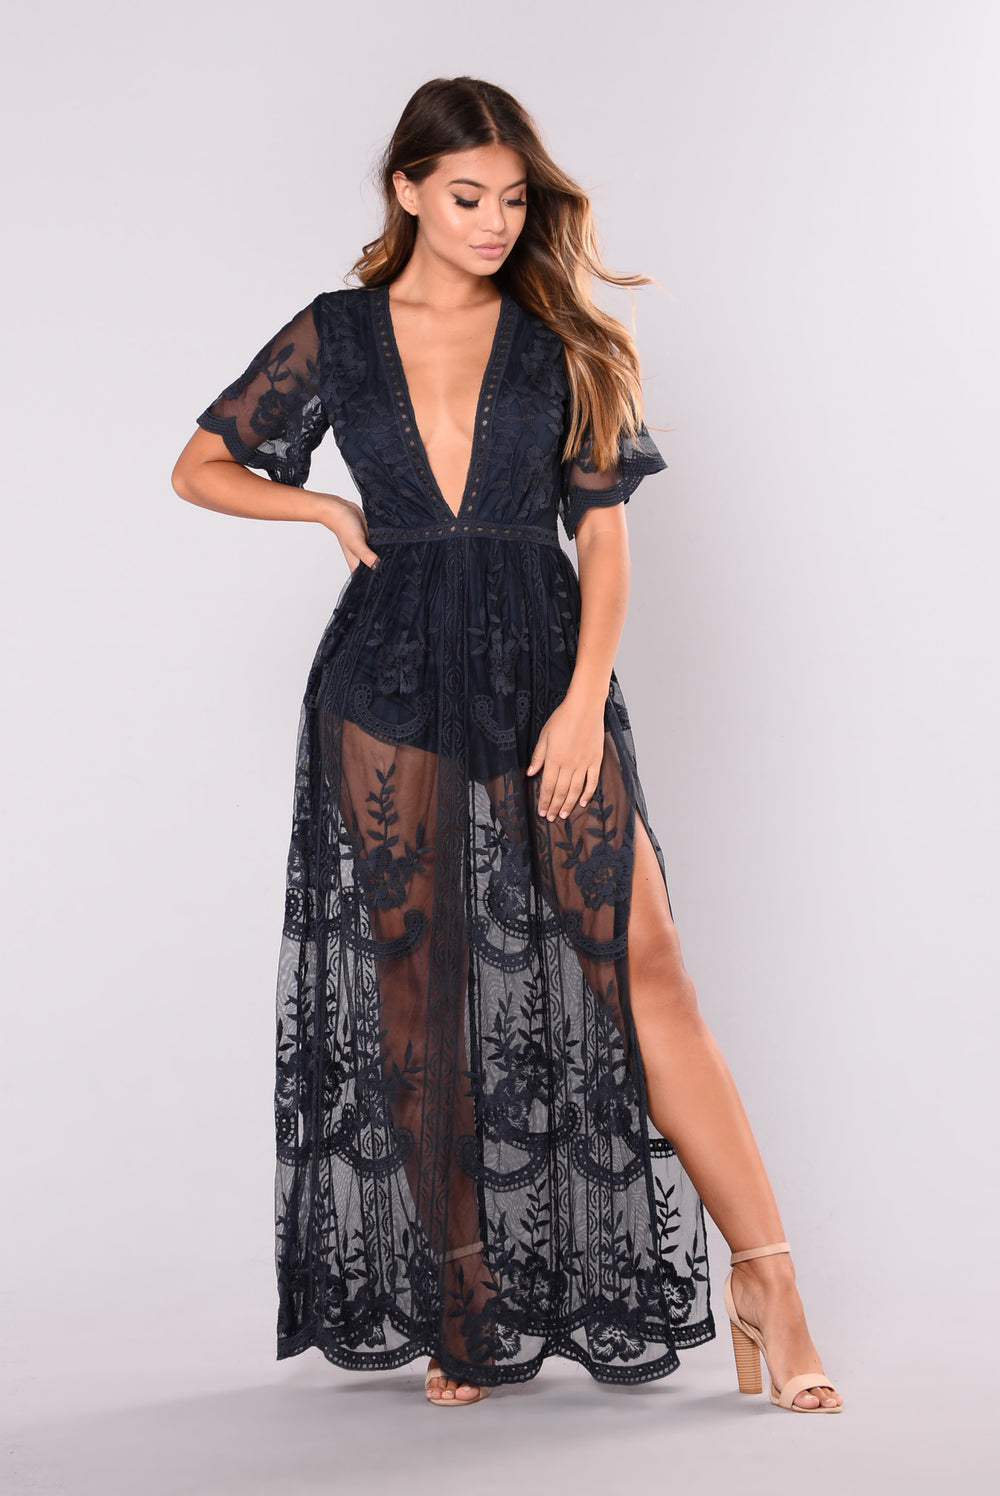 Set Our Love On Fire Dress - Navy